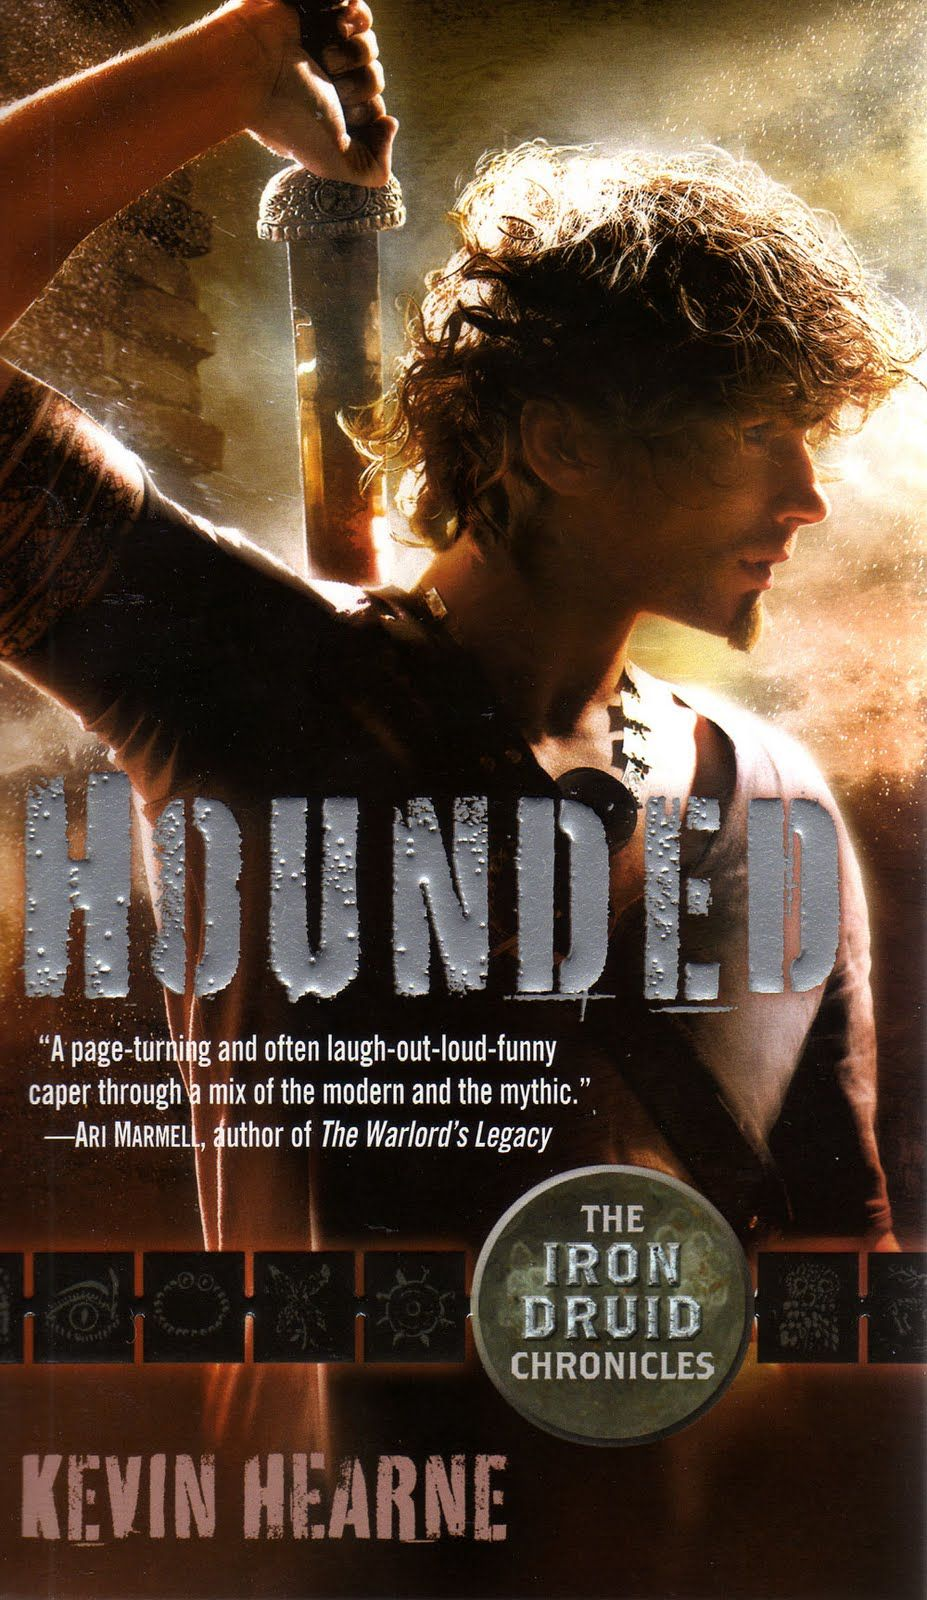 Hounded (book) : Hearne, Kevin : Atticus O'sullivan, The Last Of The  Druids, Finds His Peaceful Life In Arizona Shattered By The Arrival Of An  Angry Celtic